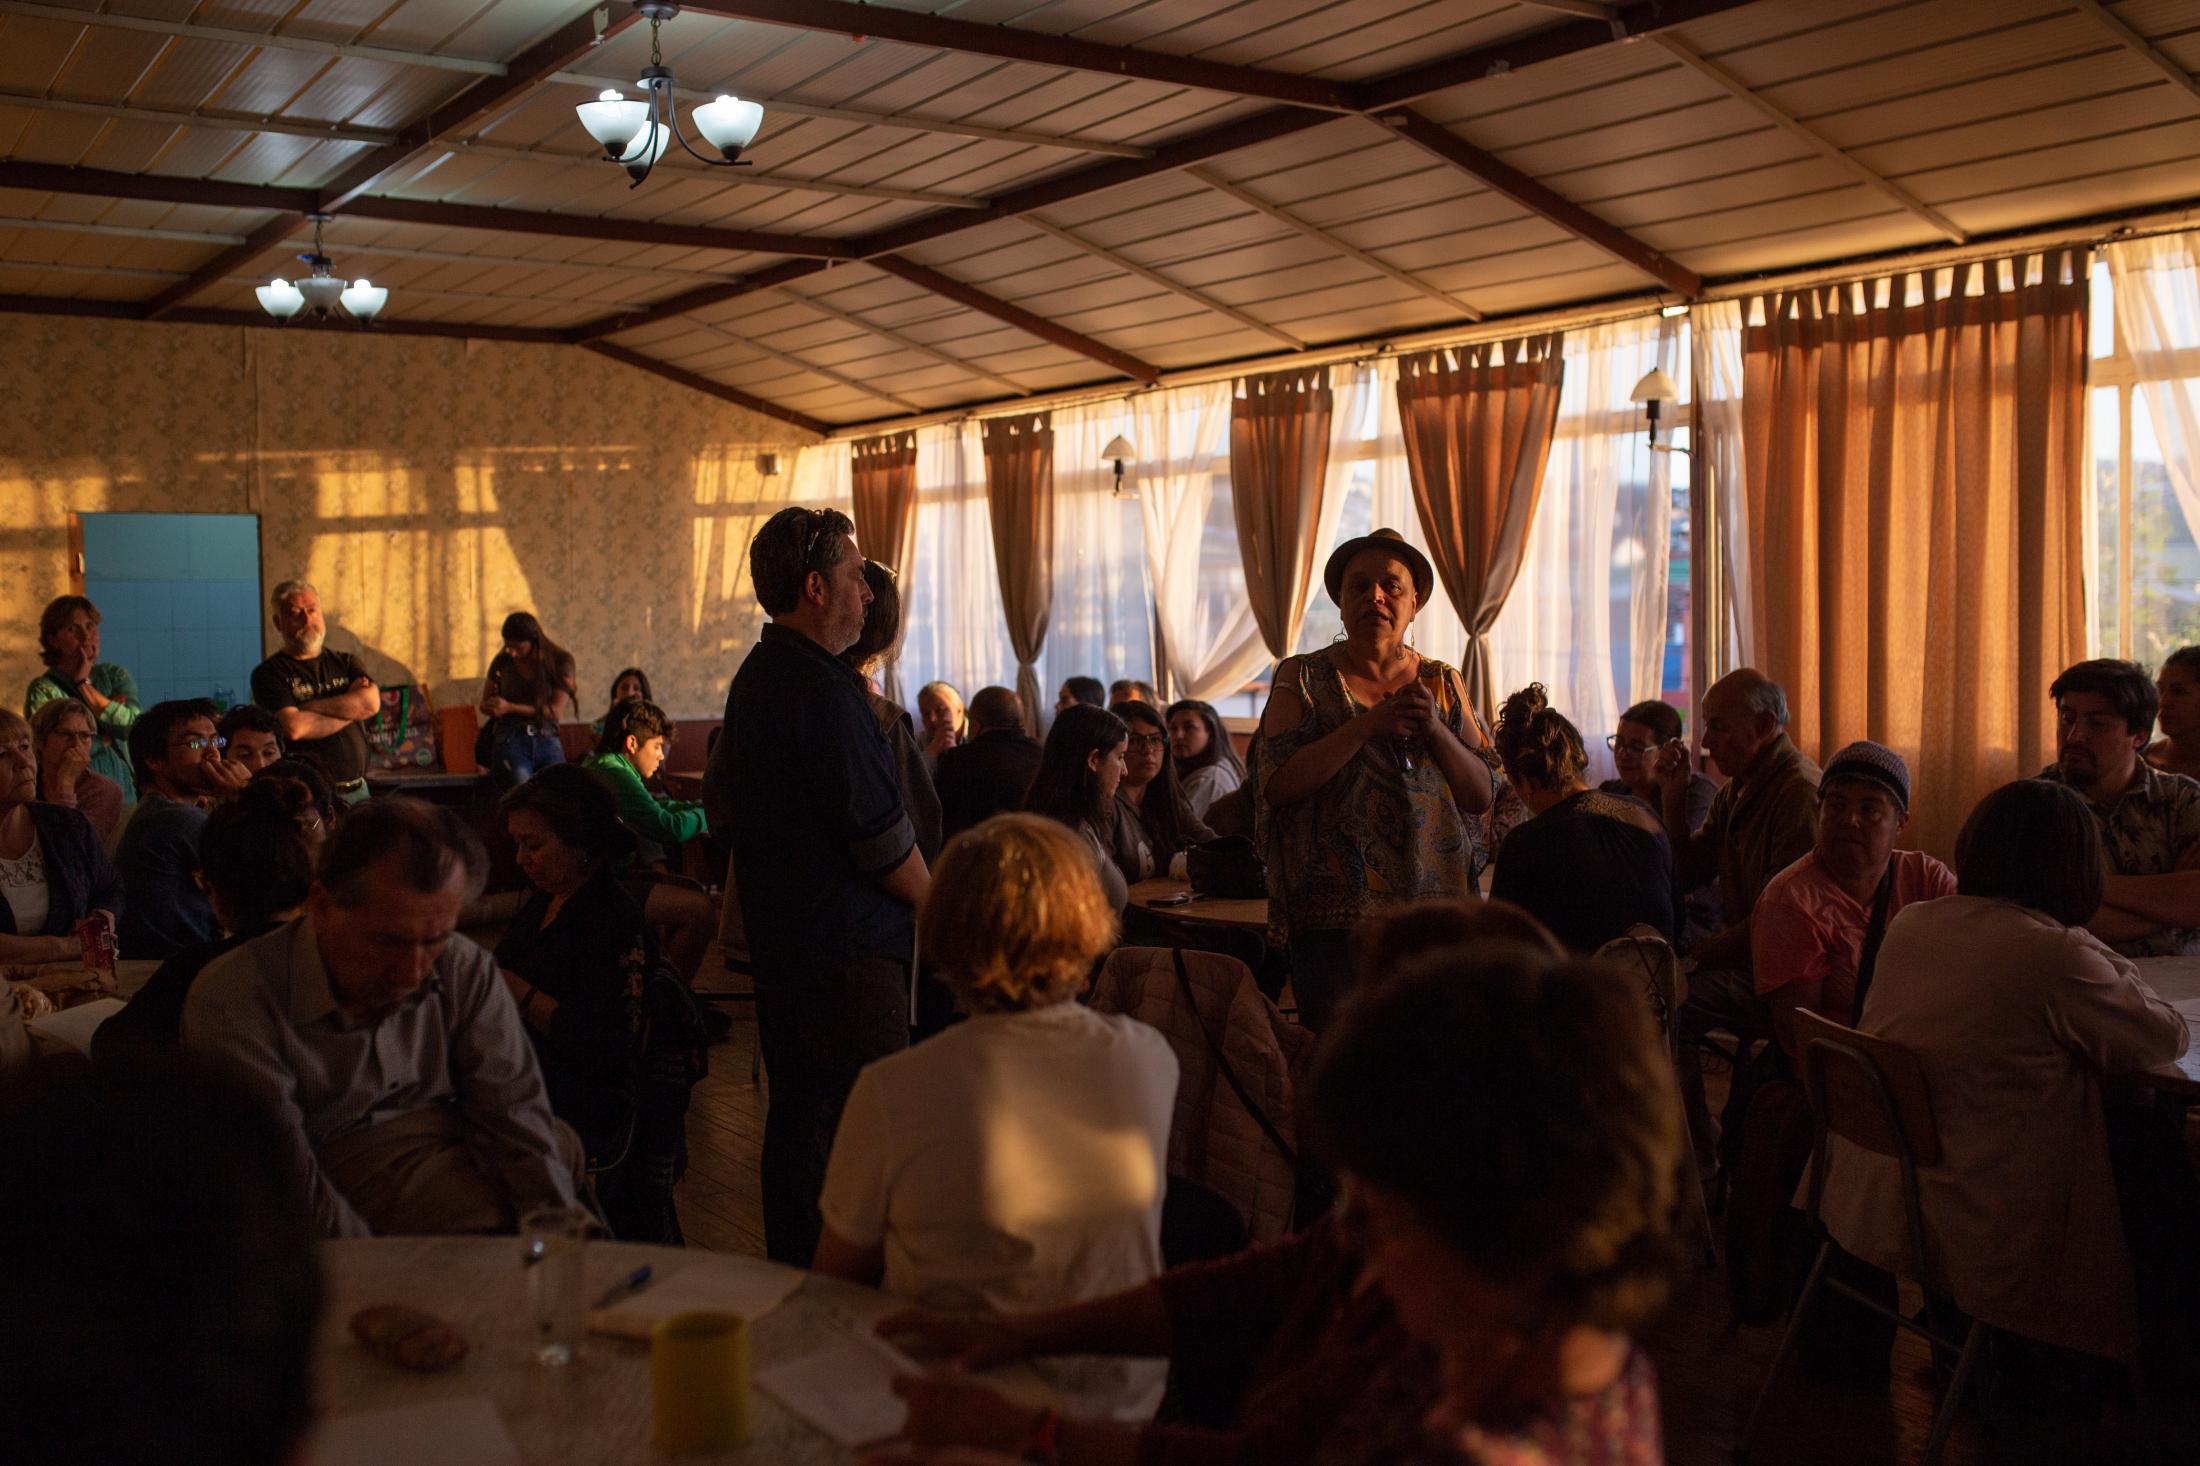 November 3, 2019. Neighbors of Cerro Esperanza, in Valparaíso, meet in an assembly to discuss the situation in the country and propose possible solutions to eliminate inequality. Among the debates generated in the town councils and citizen assemblies, the promulgation of a New Constitution appeared as a proposal. Valparaíso, Chile.